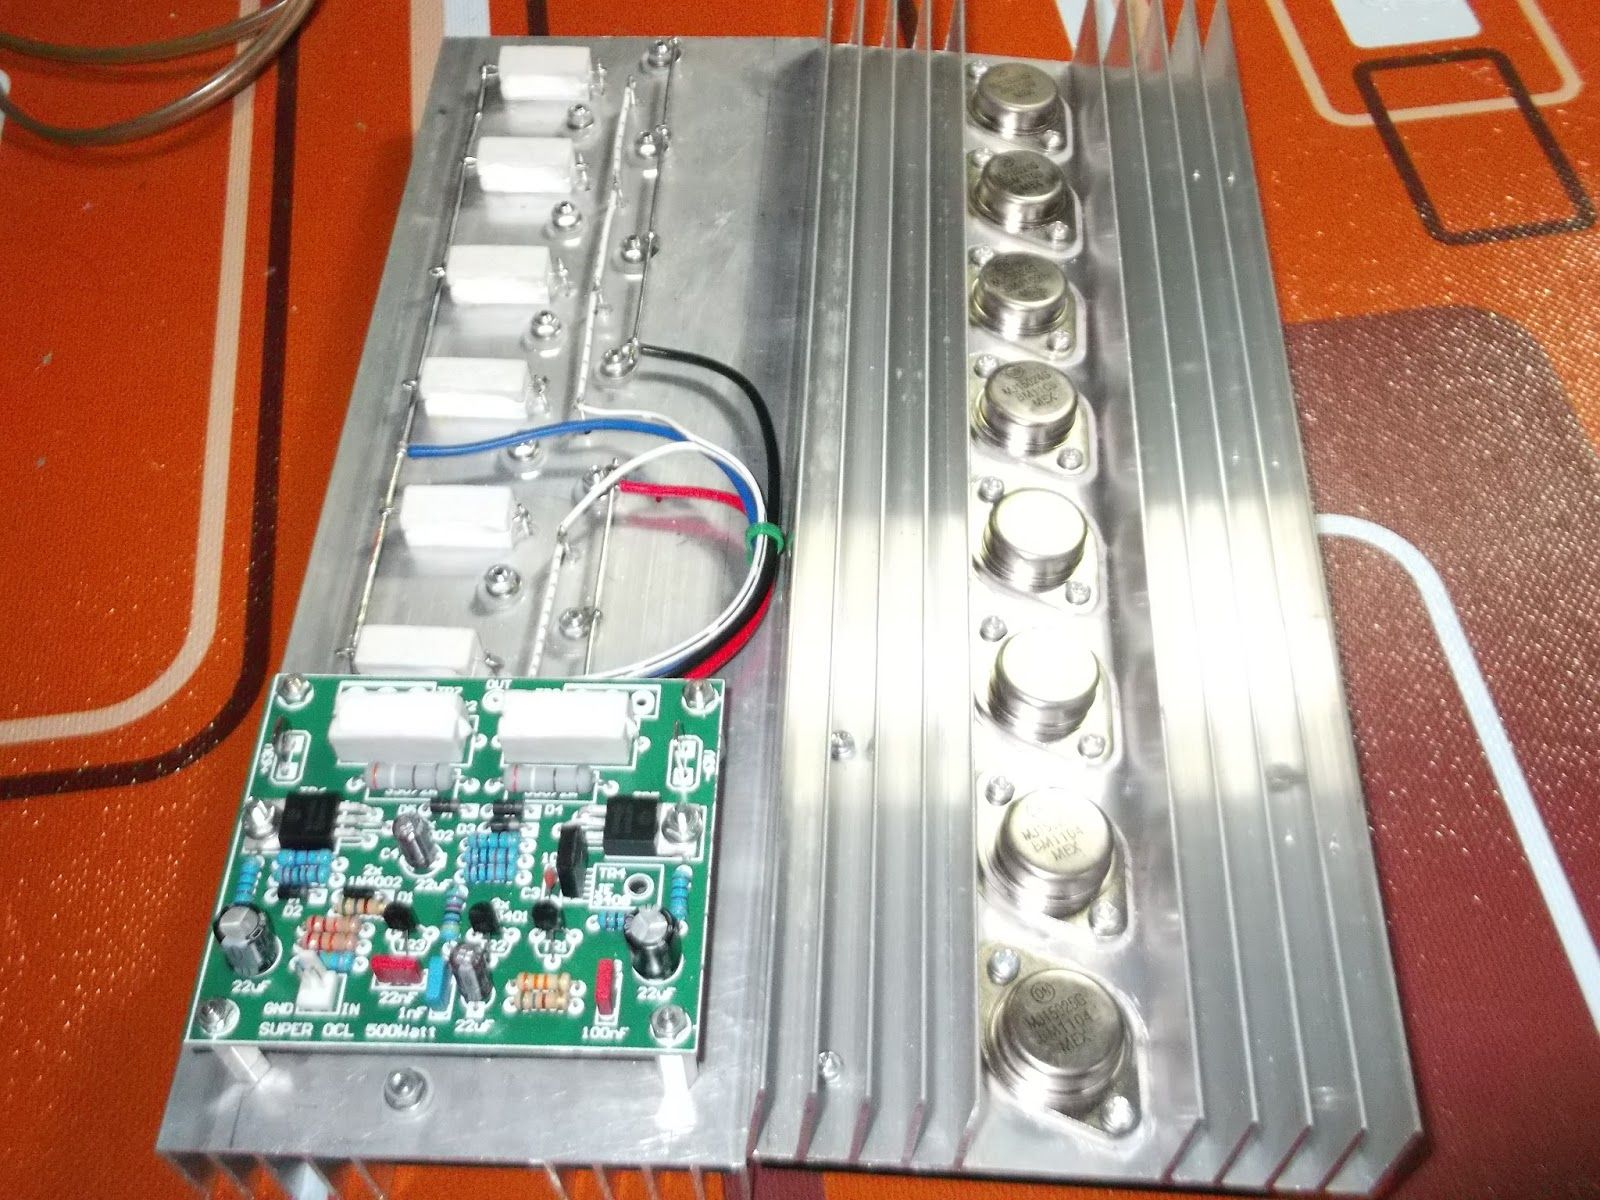 Power Amplifier Super Ocl 500w Circuit Schmy Pinterest Universal Supply With Ic78xx And Mj2955 Transistor Final